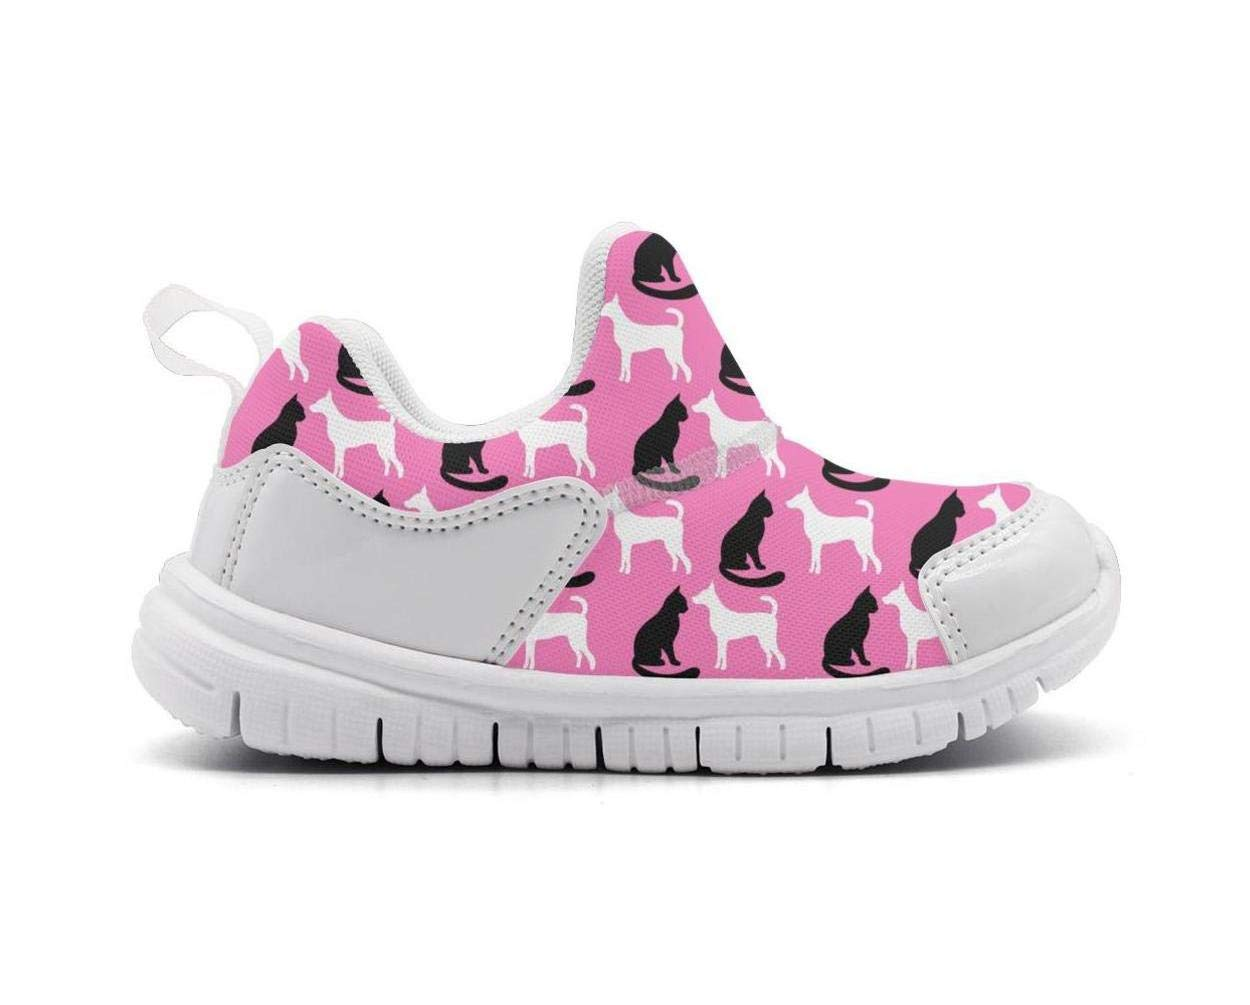 ONEYUAN Children Black Cat and White Dog Kid Casual Lightweight Sport Shoes Sneakers Running Shoes